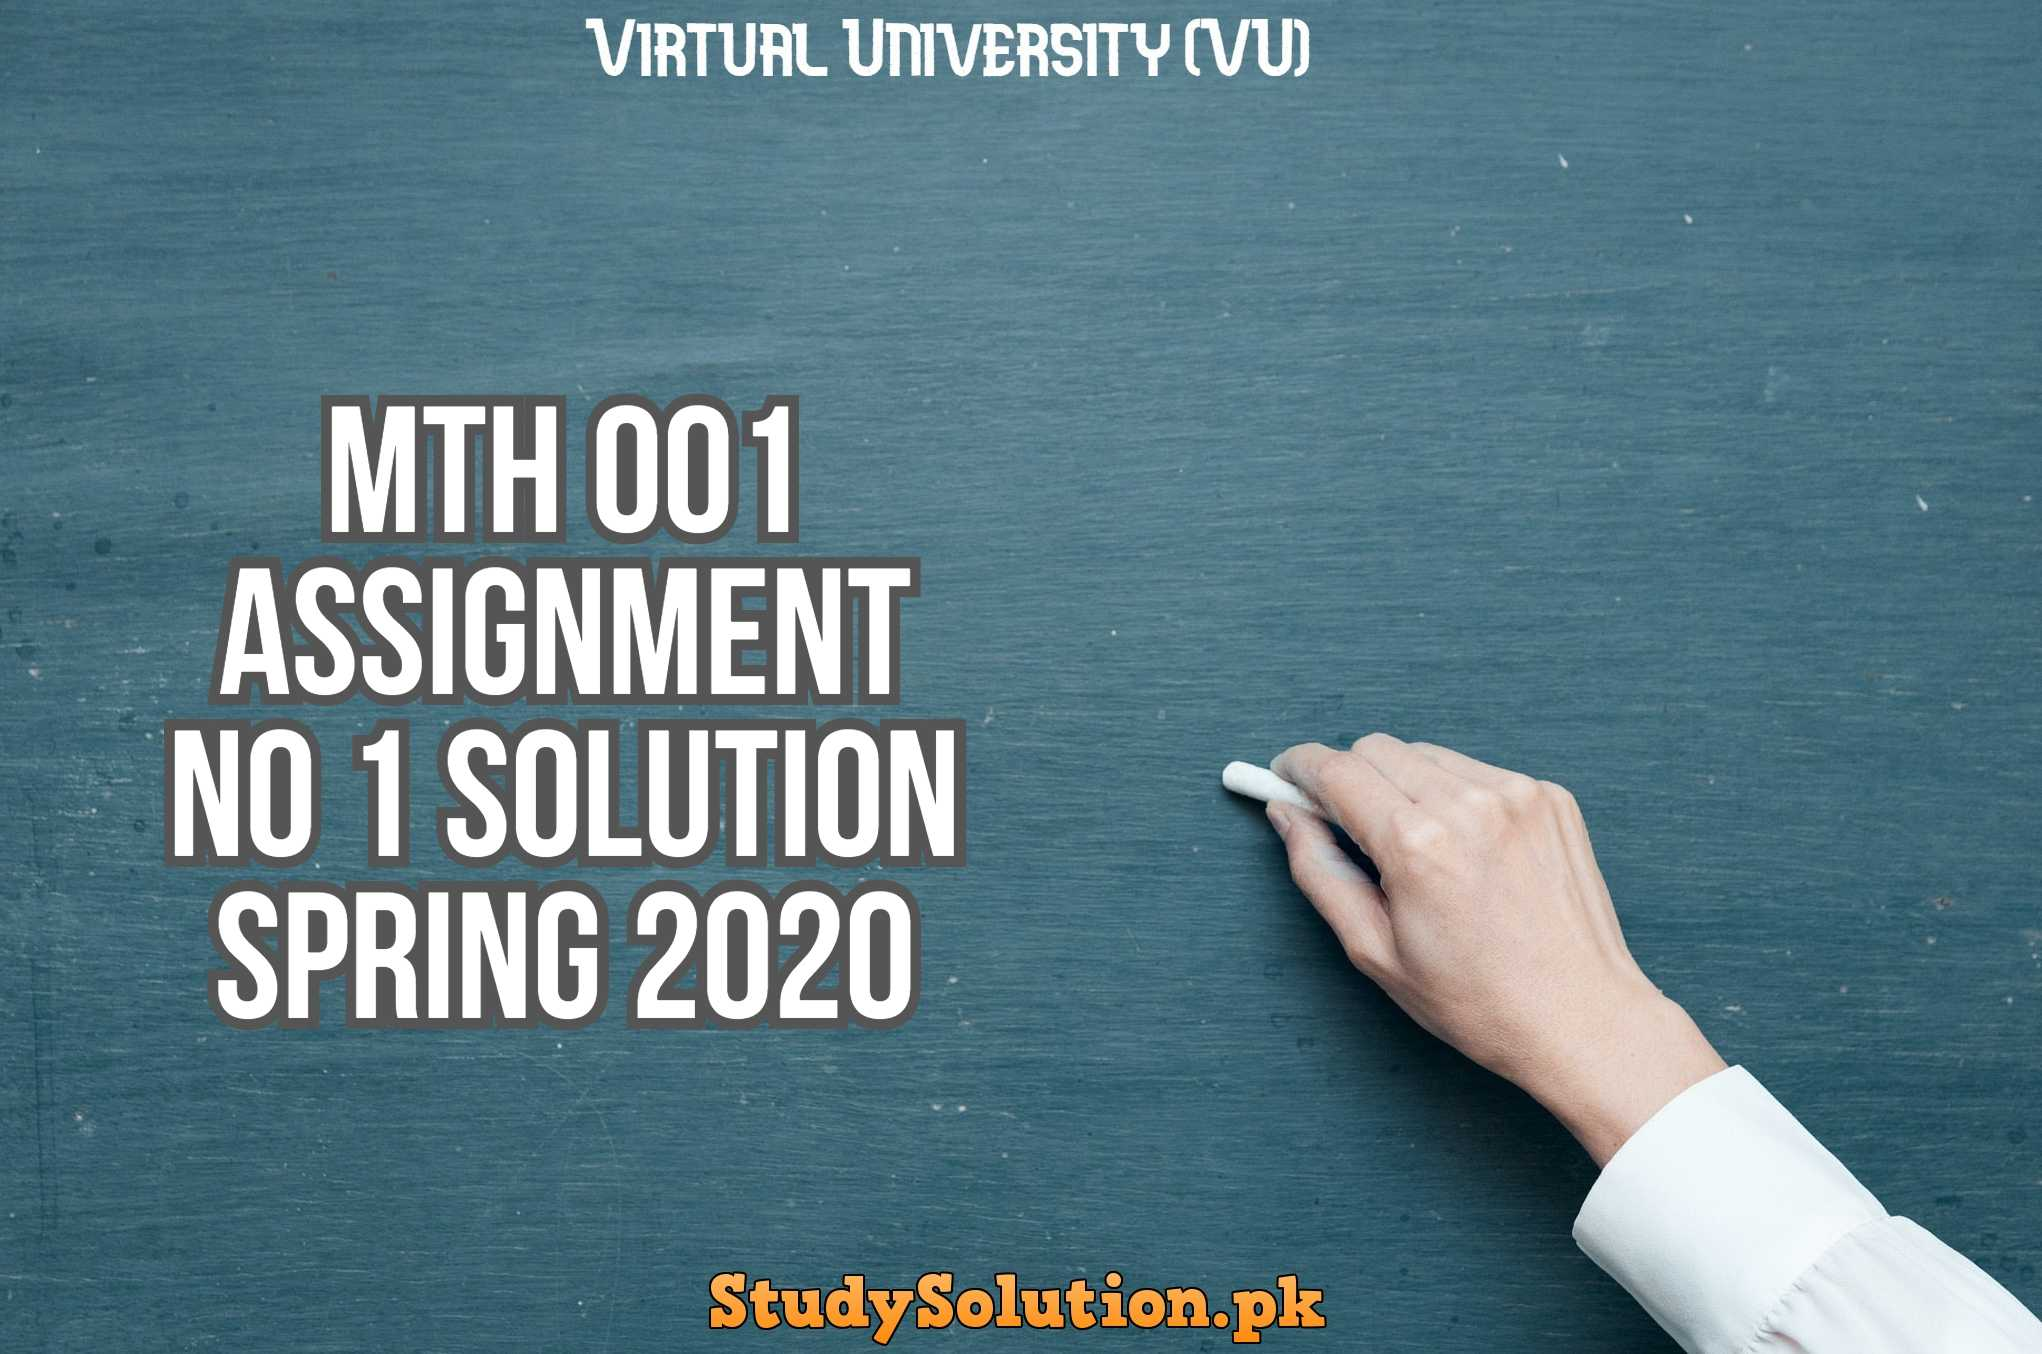 MTH 001 Assignment No 1 Solution Spring 2020